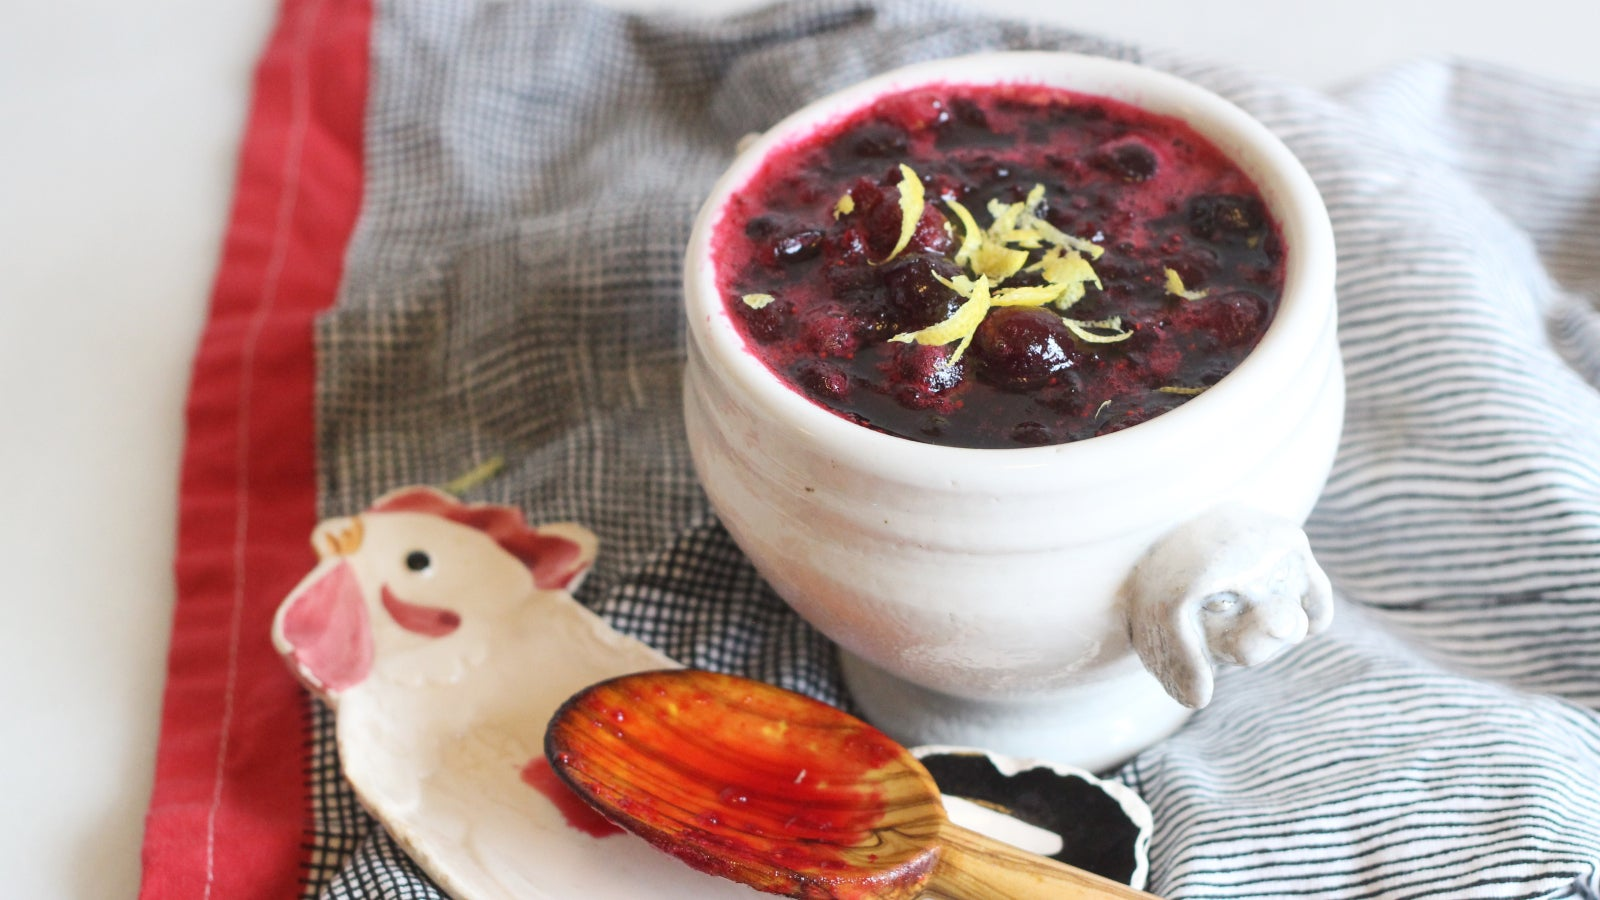 Add Blueberries To Your Cranberry Sauce